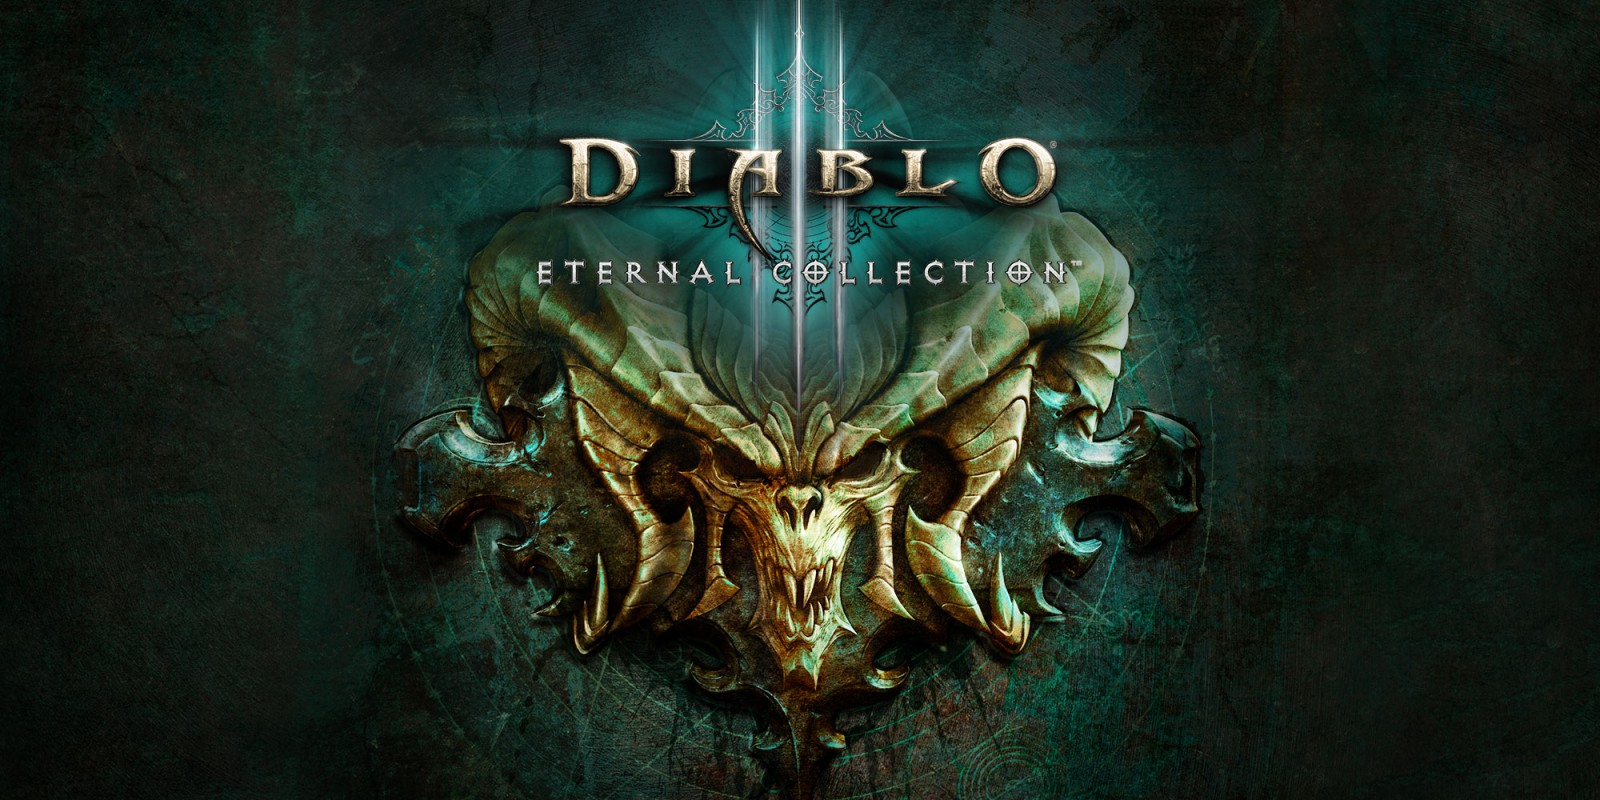 Diablo III Eternal Collection PC Game Latest Version Free Download